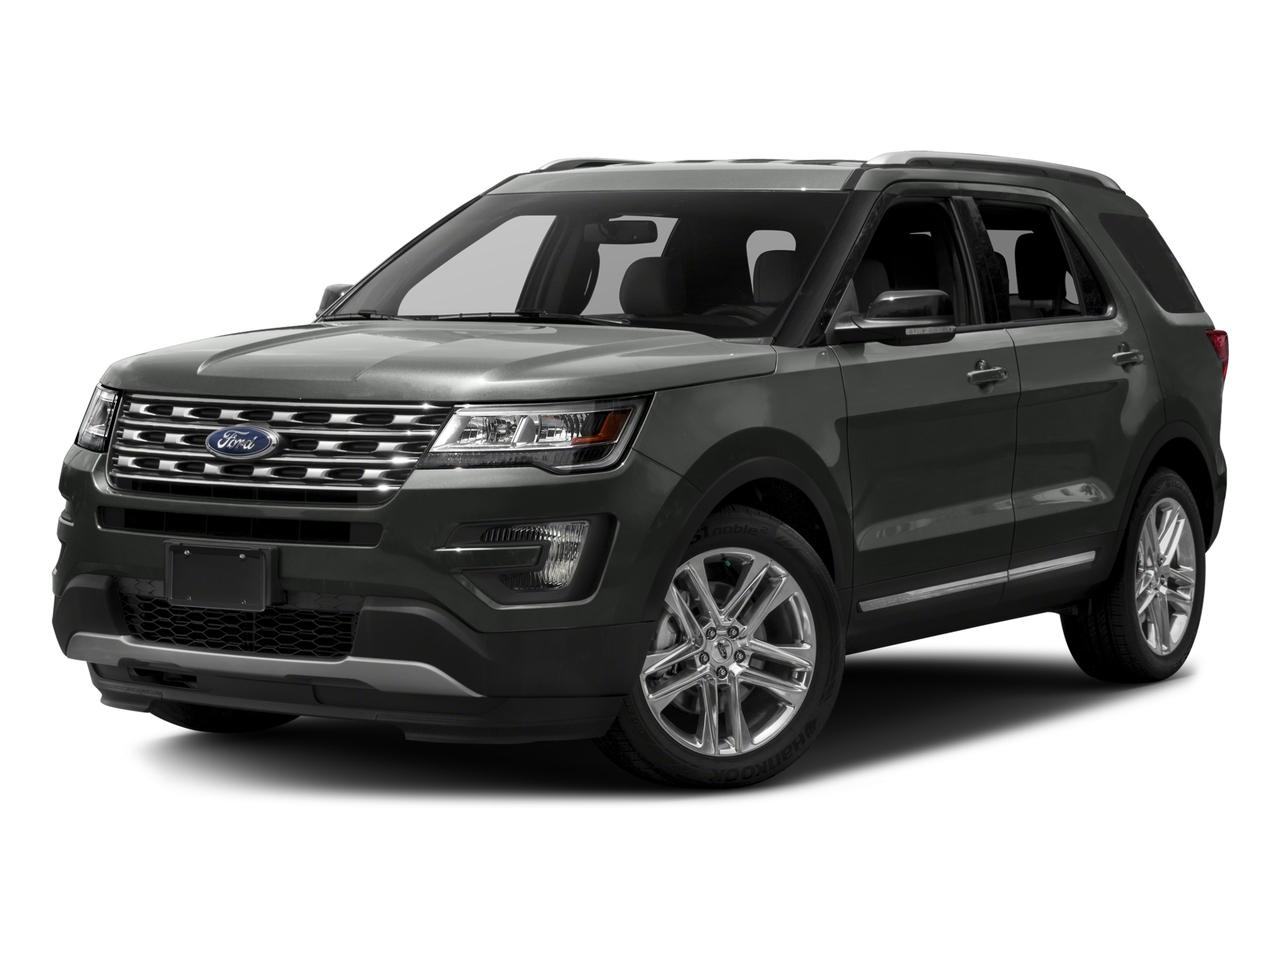 2017 Ford Explorer Vehicle Photo in Tucson, AZ 85705